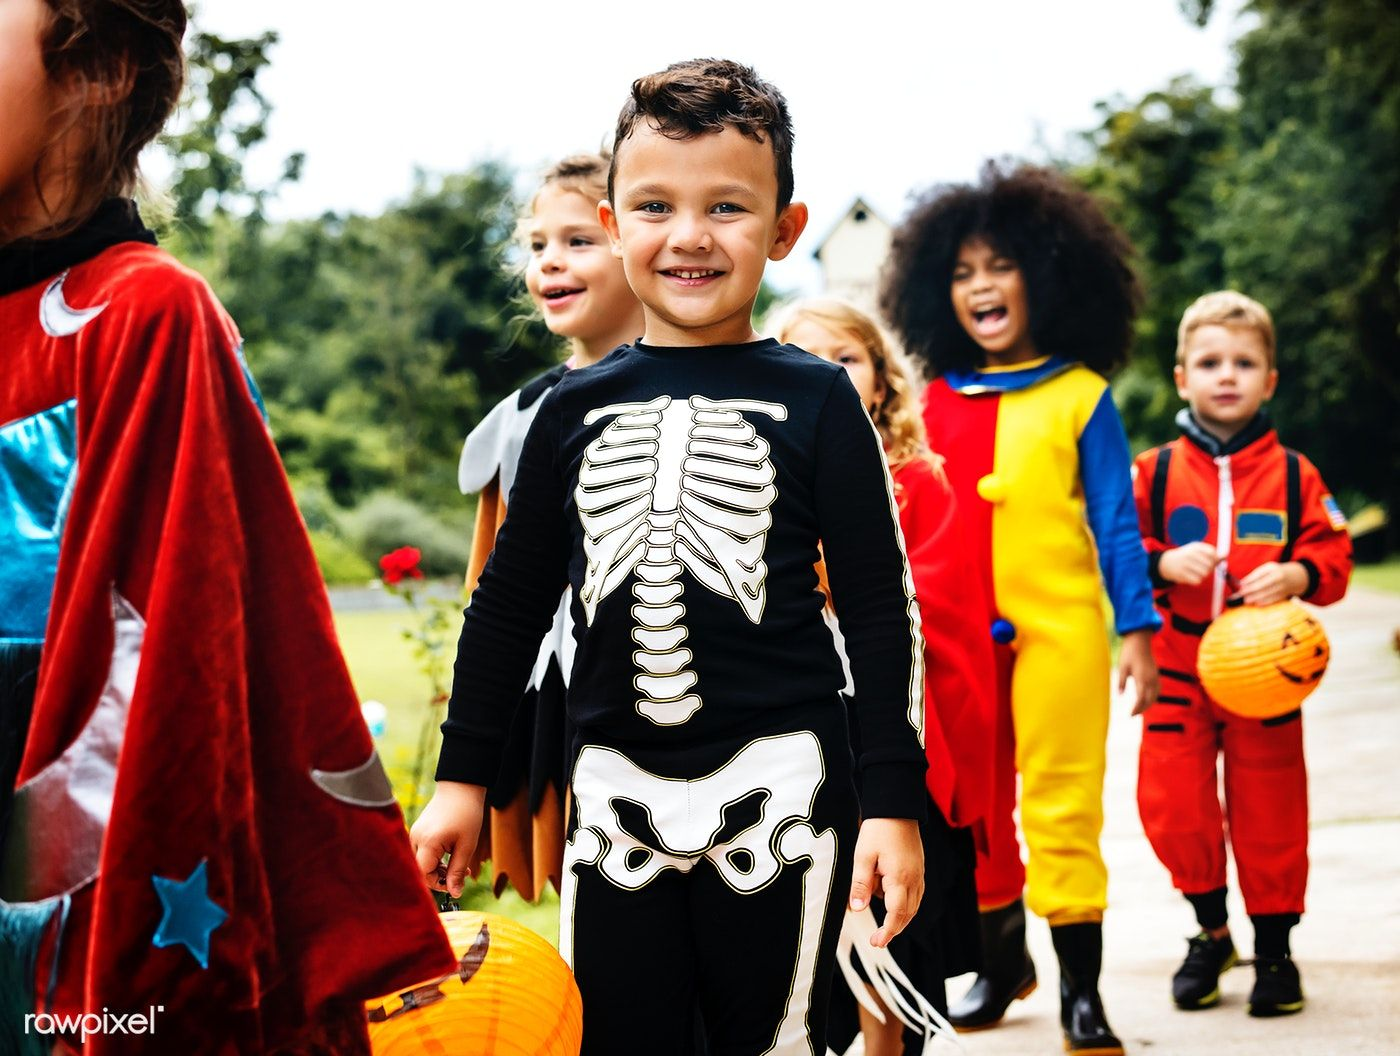 Download premium photo of Young kids trick or treating